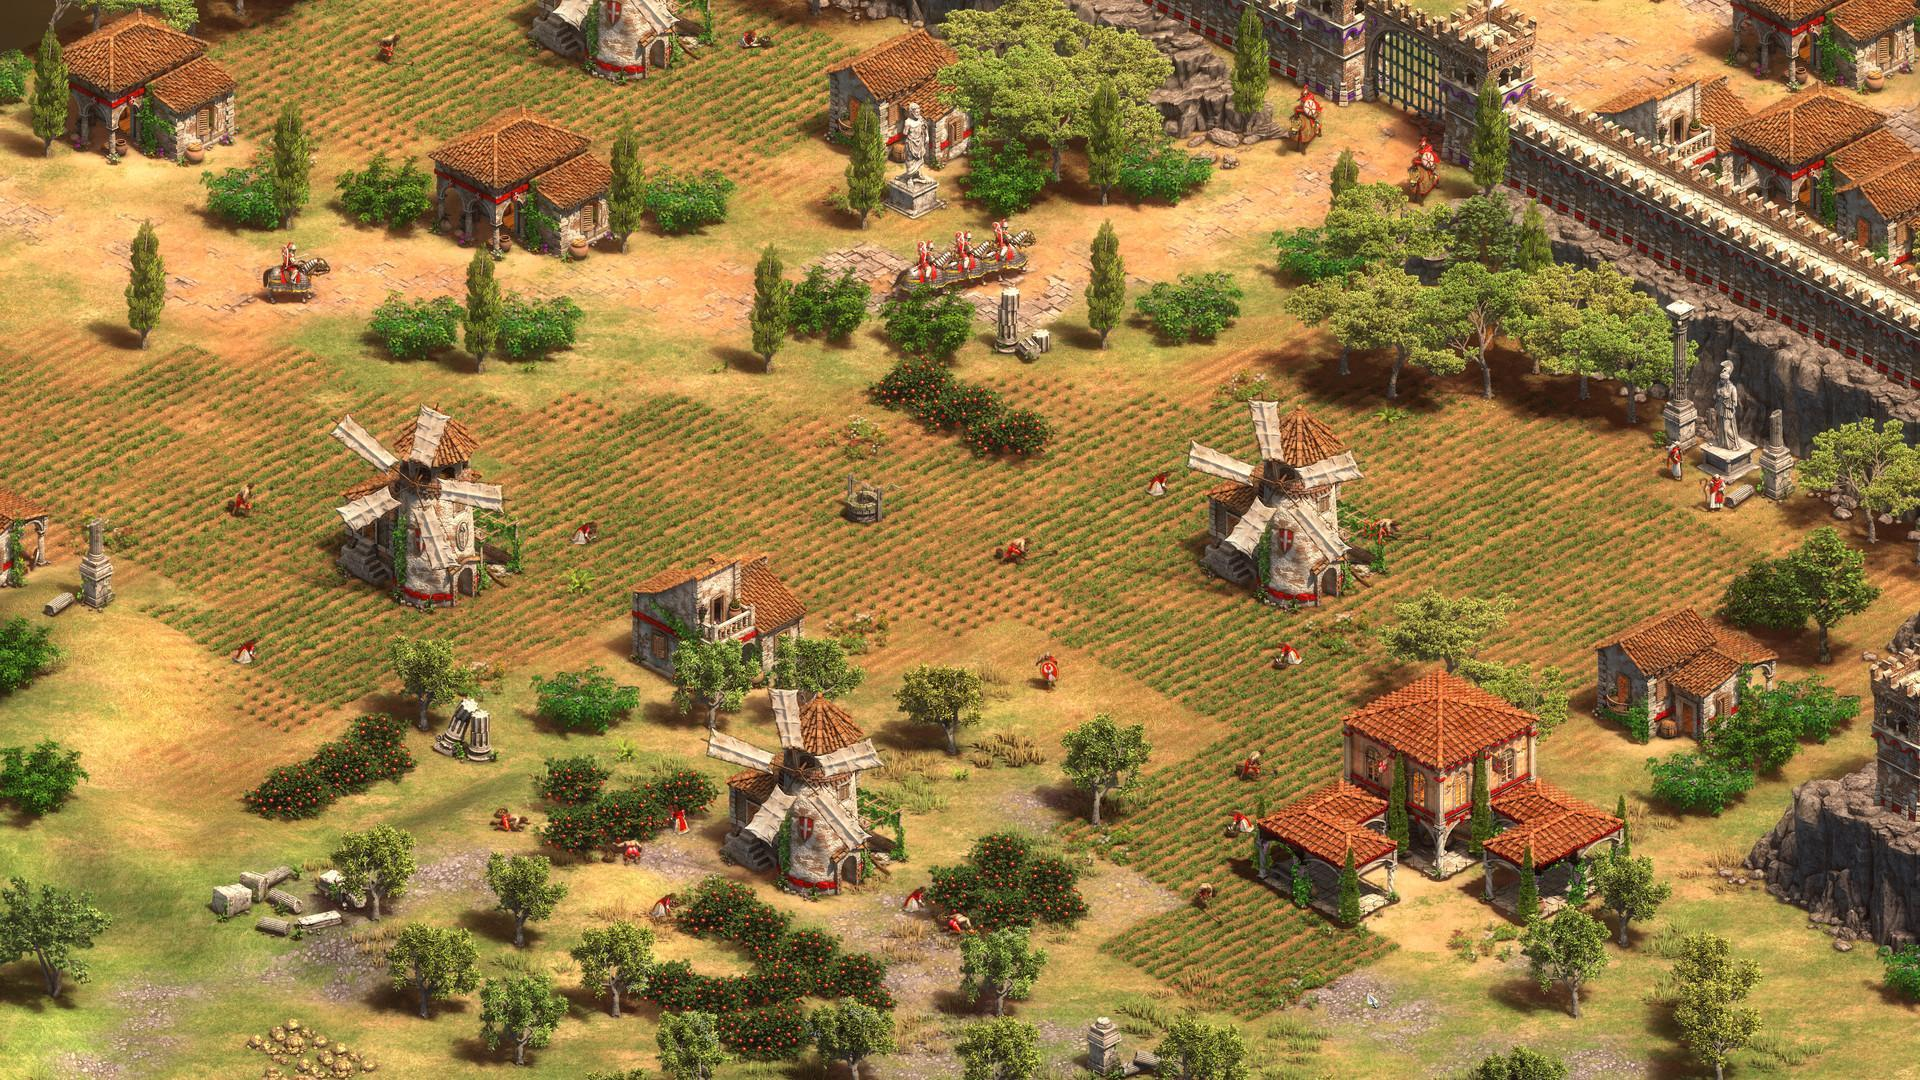 Age of empires 2 free mobile game download play midtown madness 2 game online free